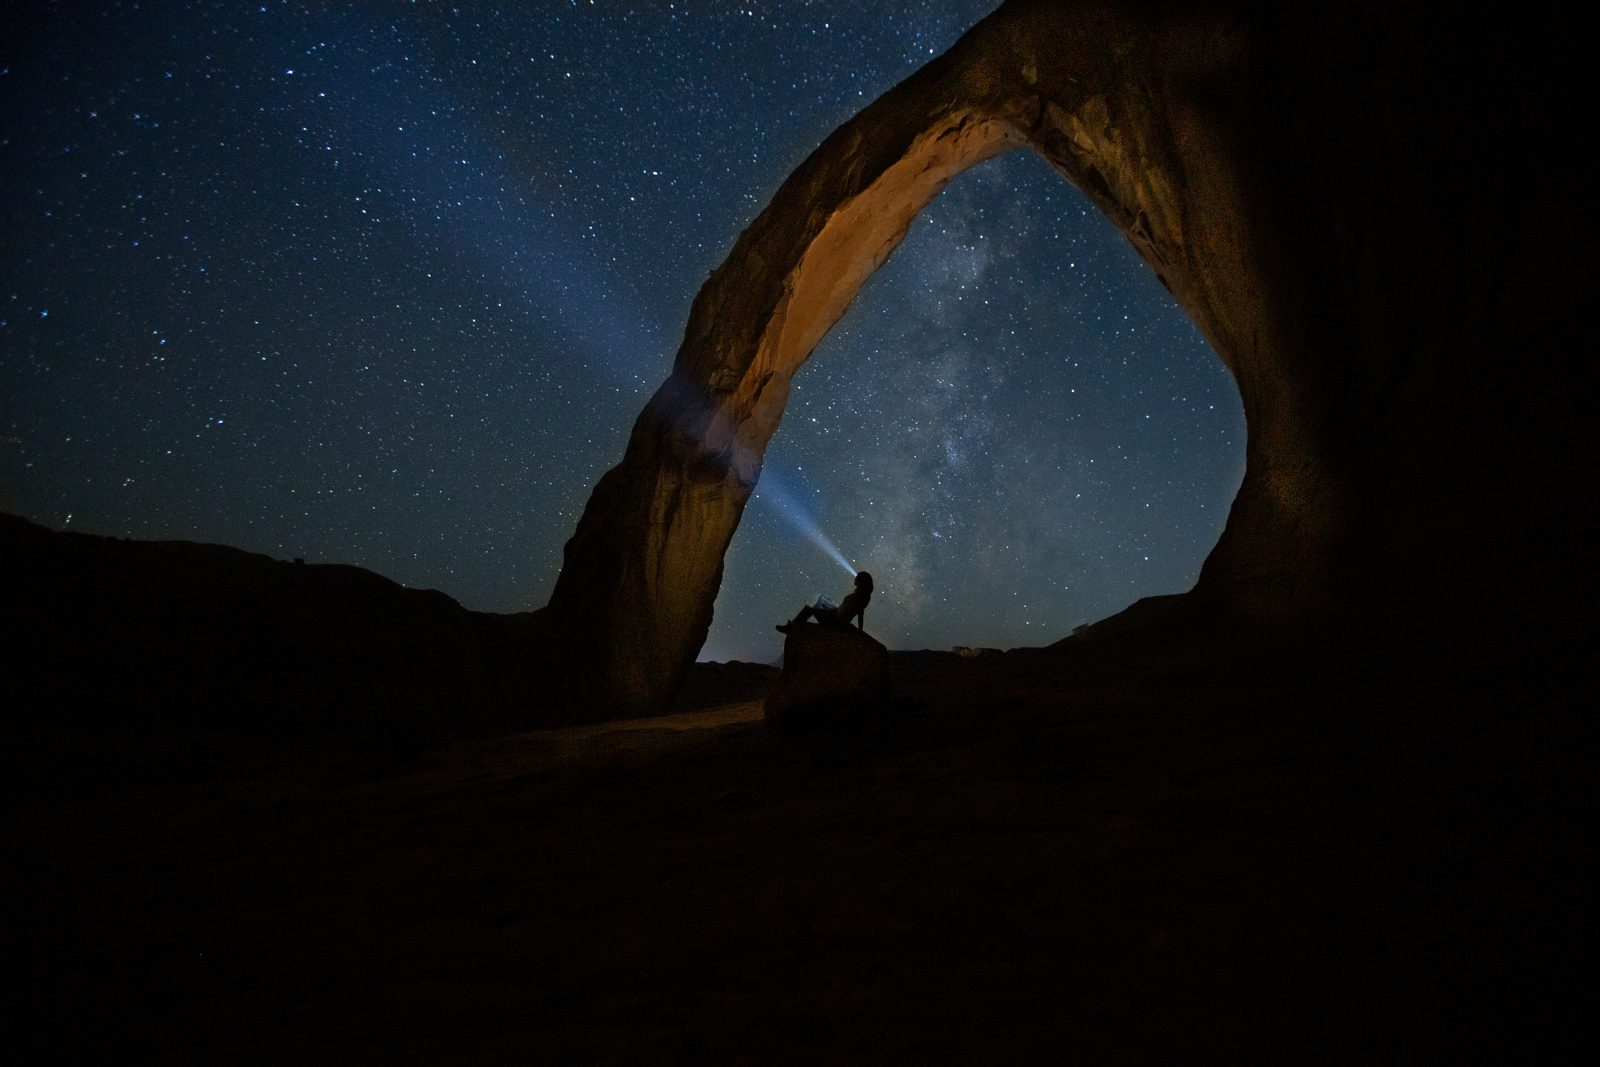 Corona Arch Night Sky with Milky Way and Girl with Headlamp